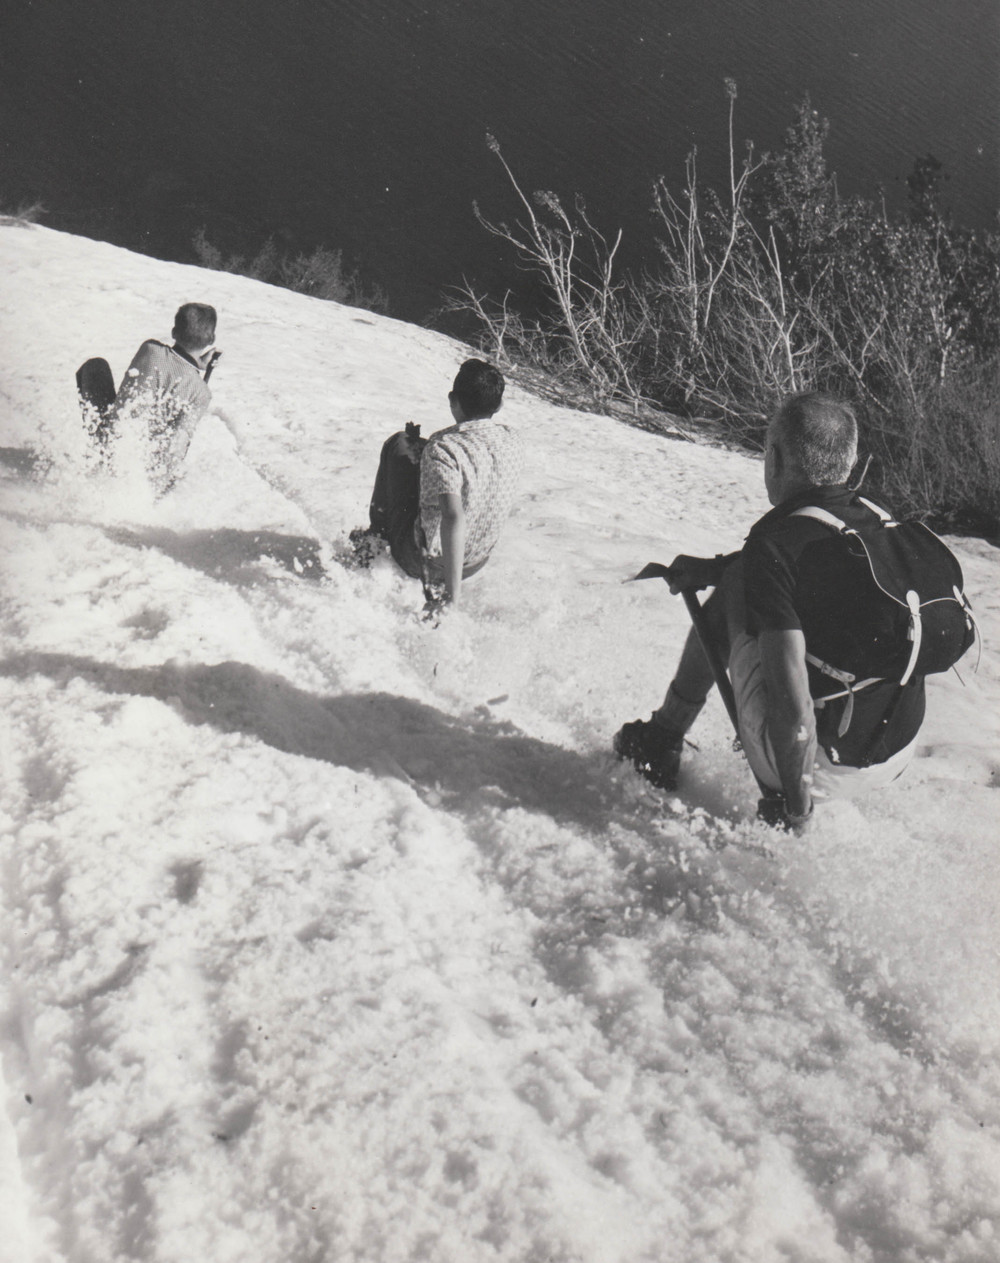 Louis teaching two boys the art of glissading—how to quickly and safely descend a glacier.